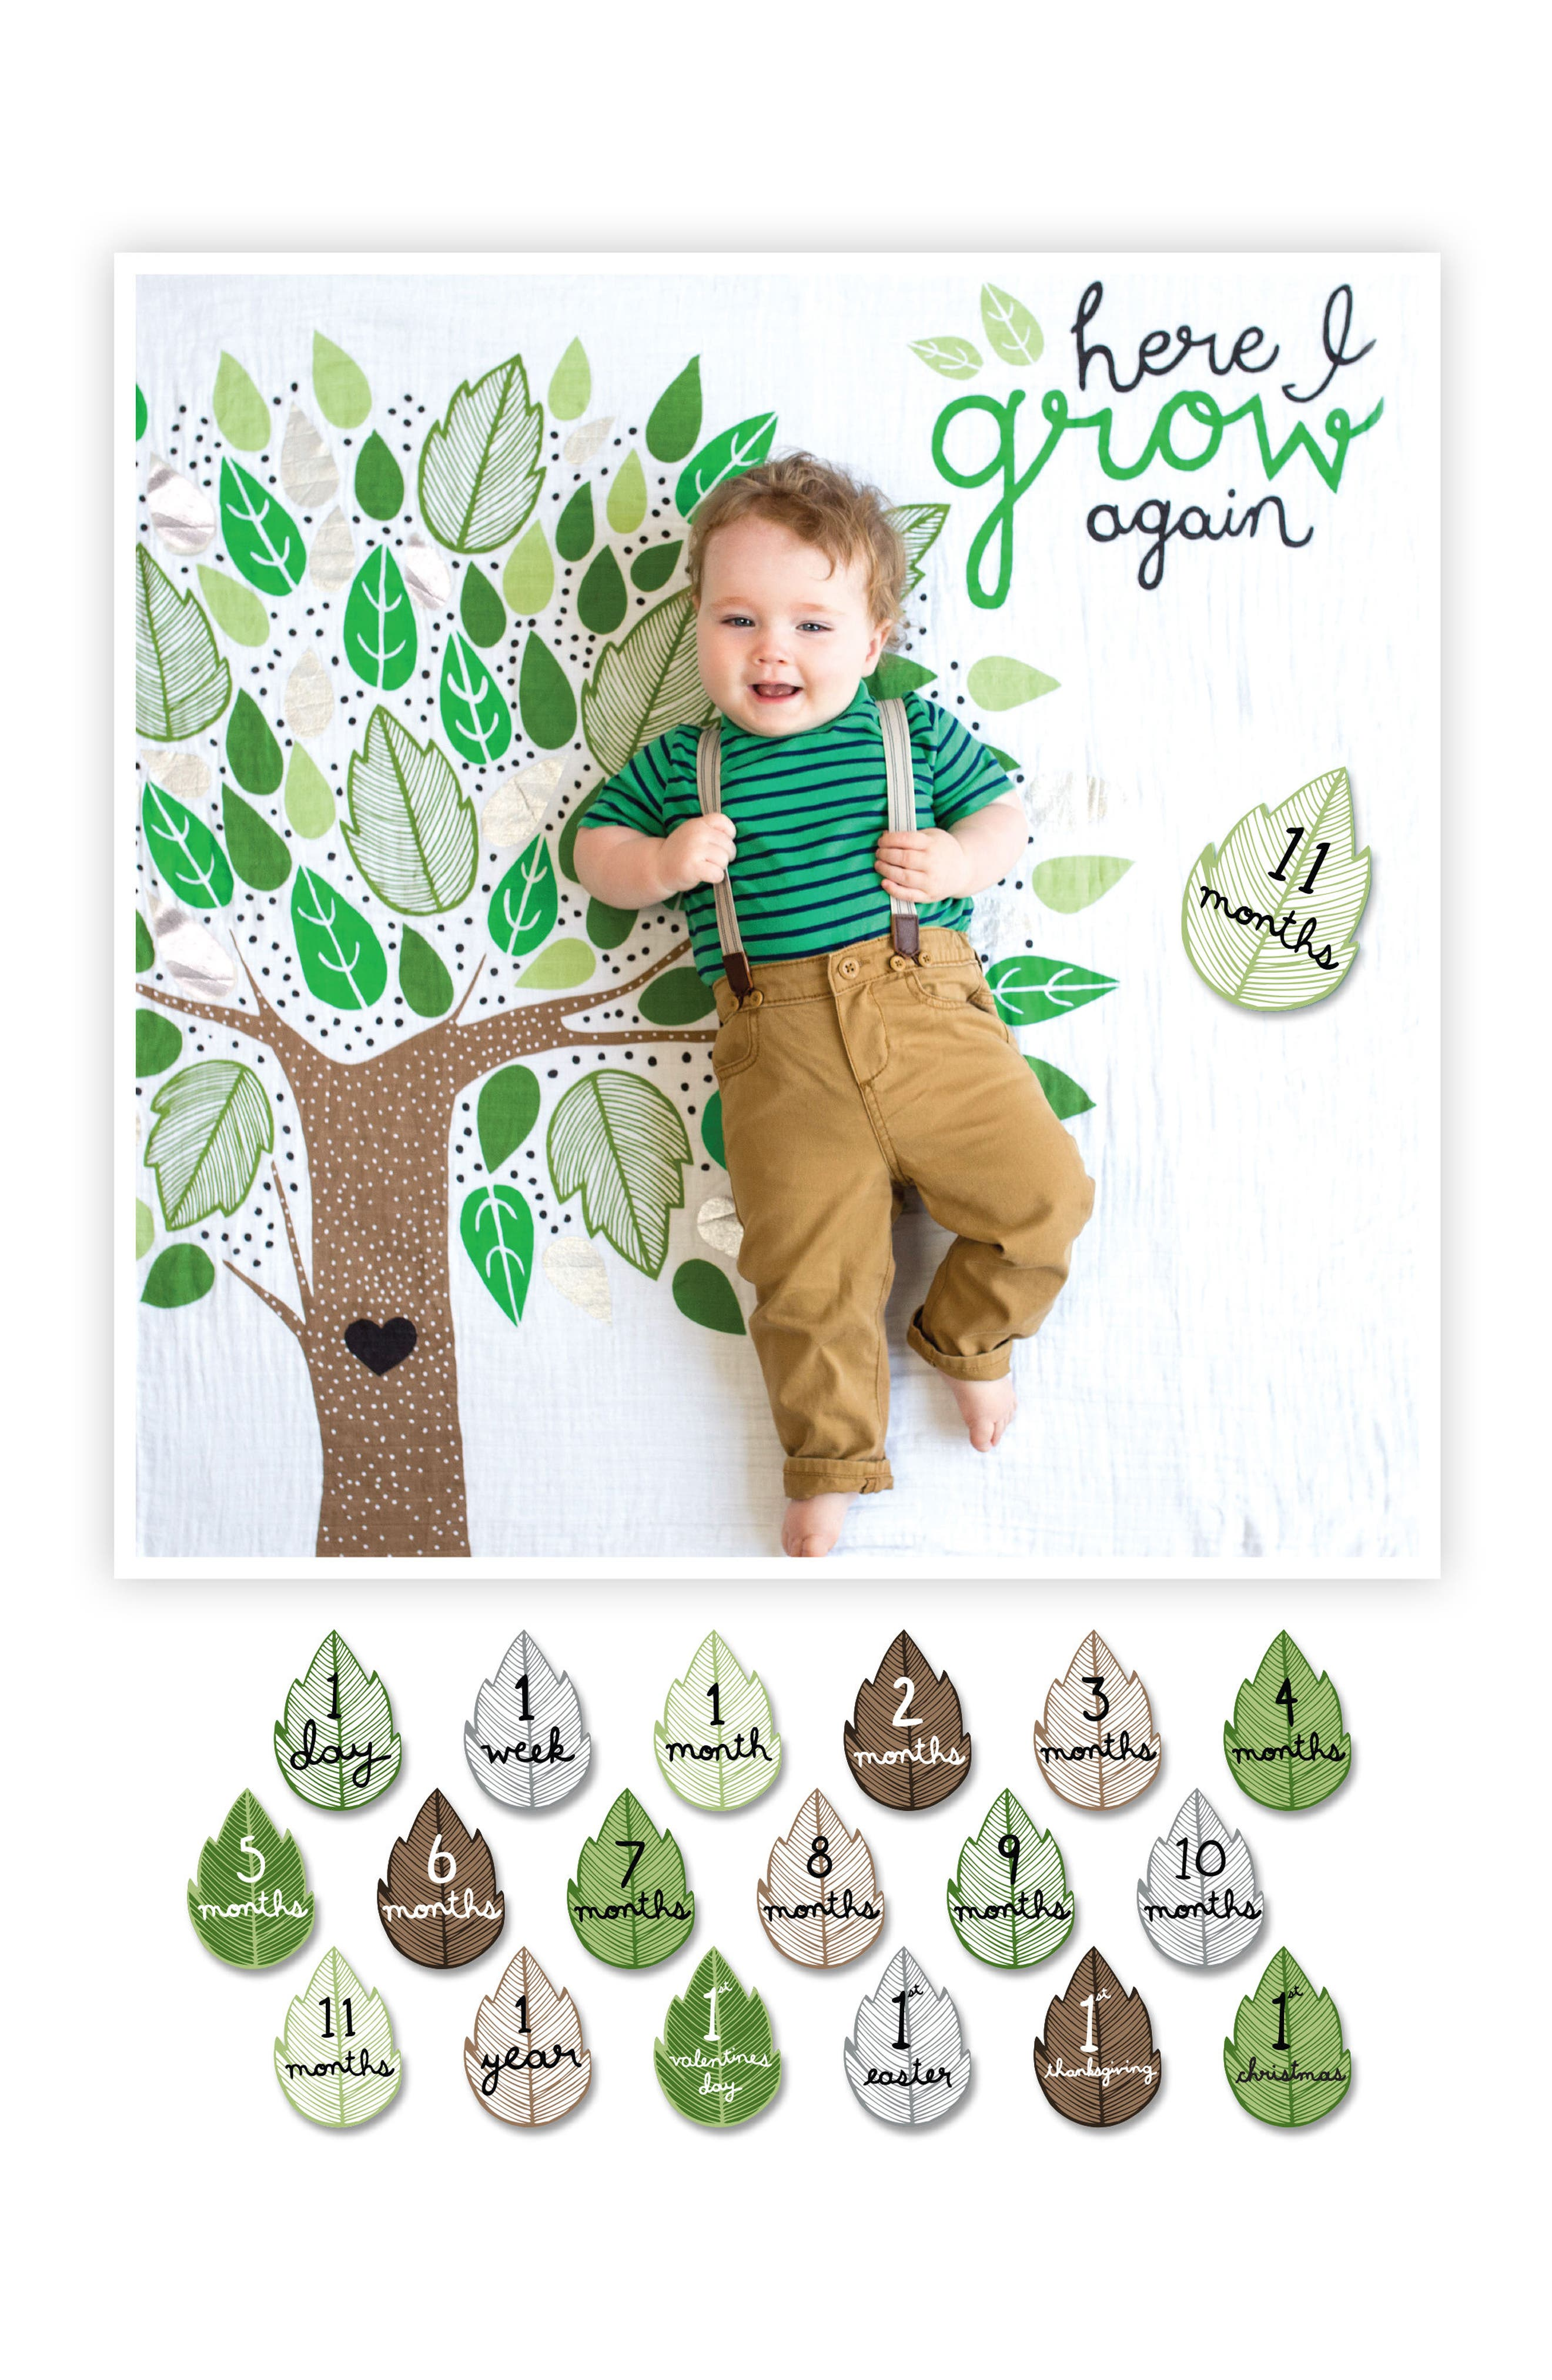 Baby's First Year - Here I Grow Again Muslin Blanket & Milestone Card Set,                             Alternate thumbnail 3, color,                             GREEN